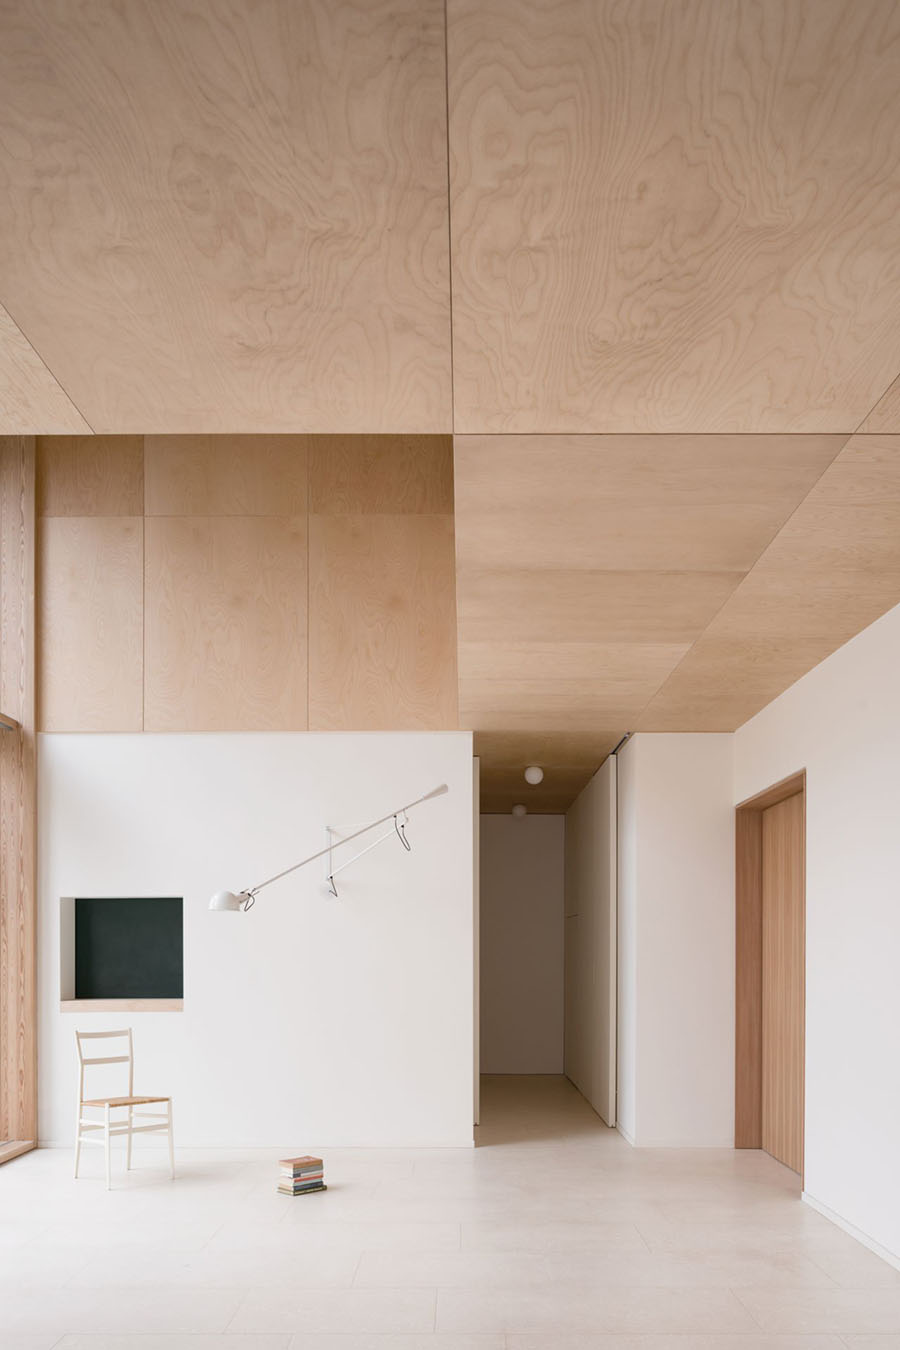 A Country House in Chievo by Studio Wok